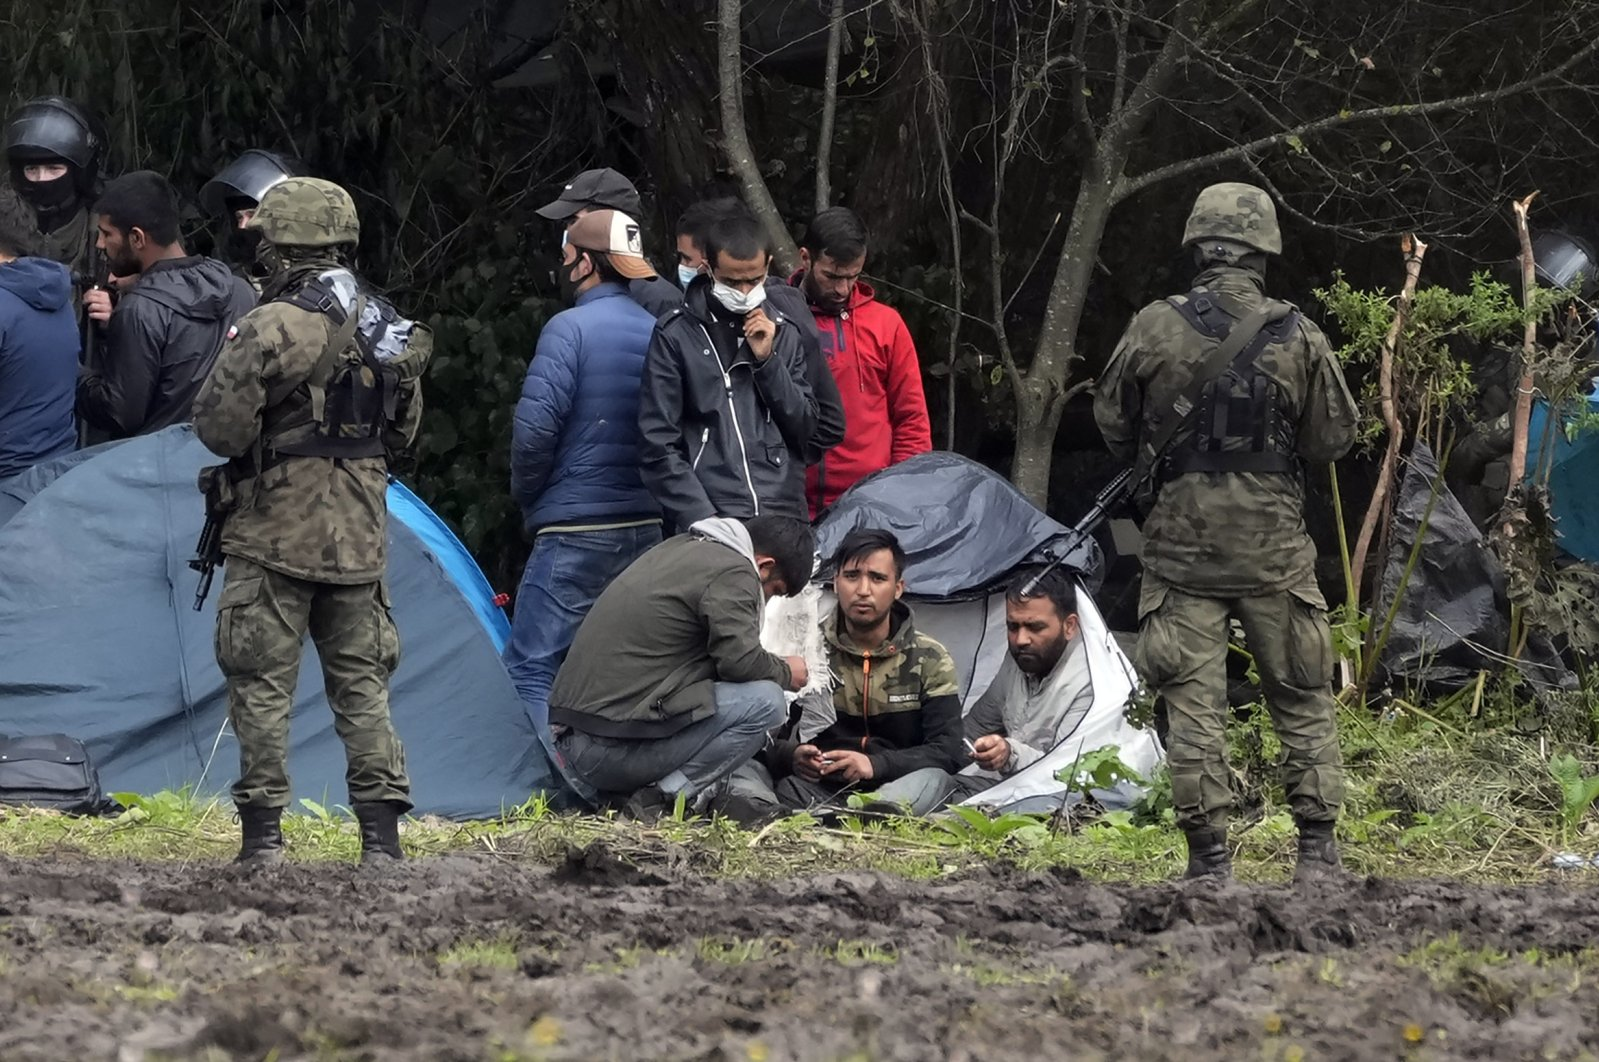 Polish security forces surround migrants stuck along with border with Belarus in Usnarz Gorny, Poland, Sept. 1, 2021. (AP Photo)